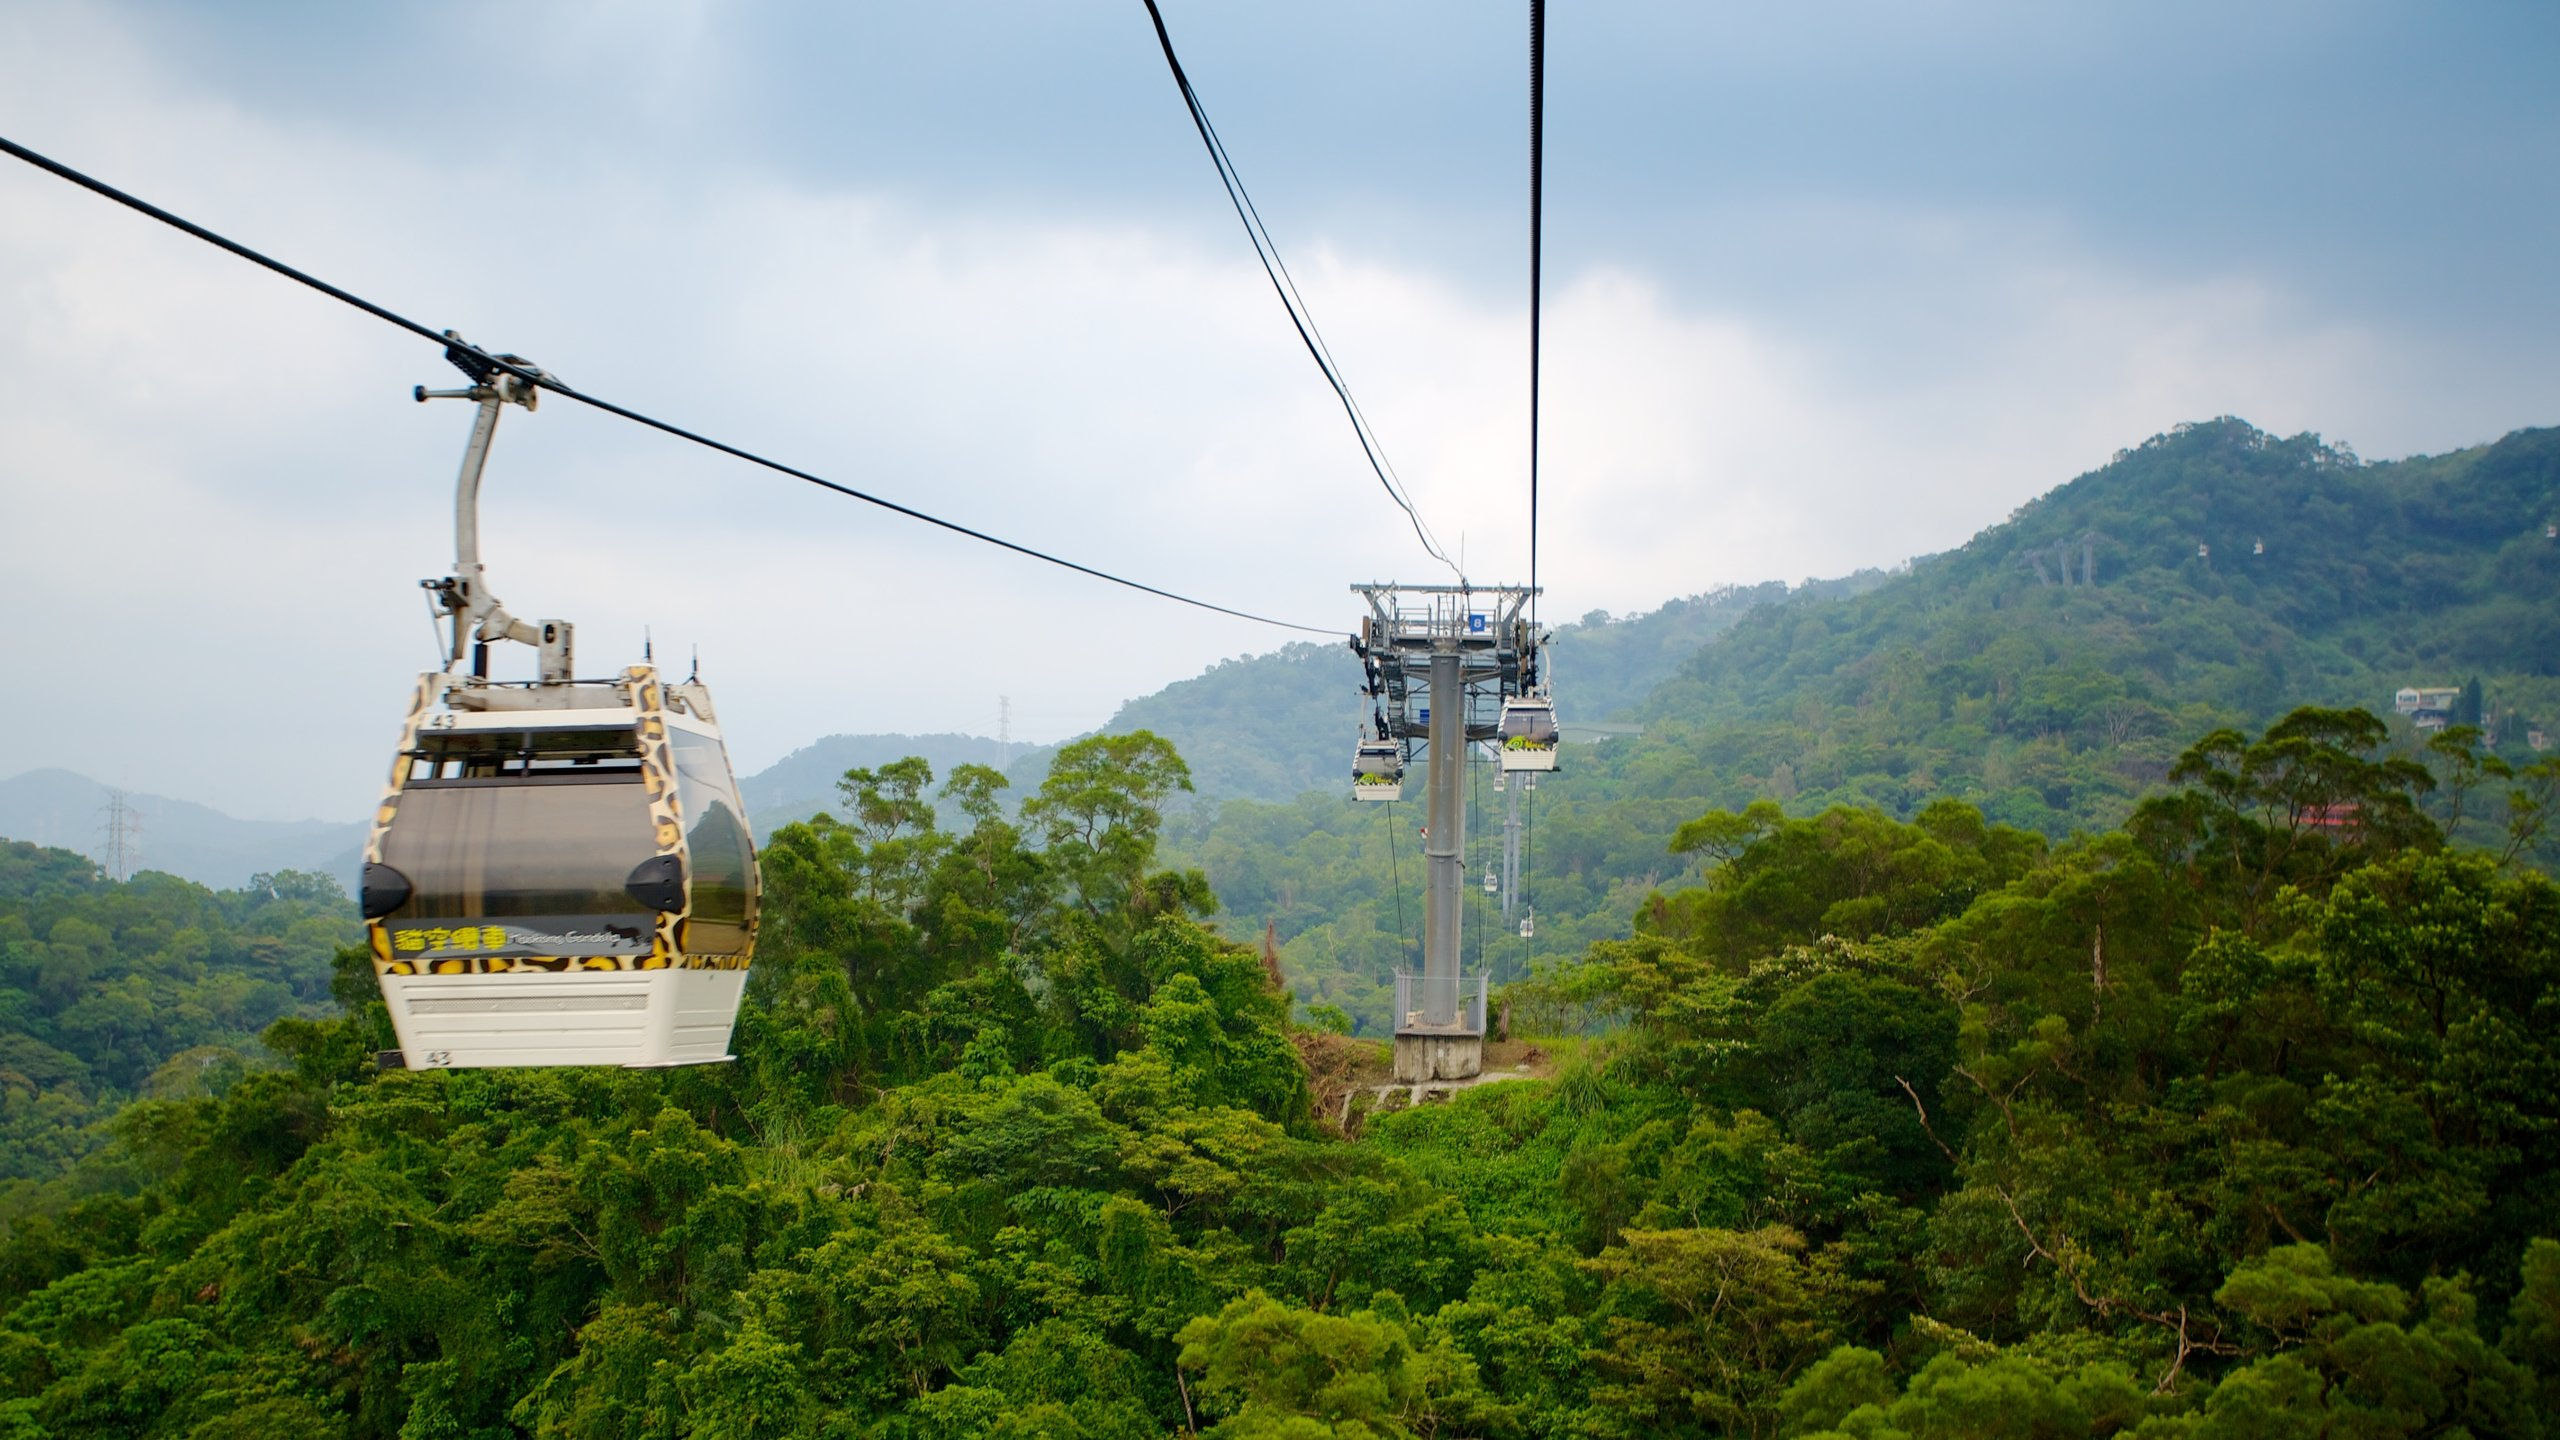 10 Best Hotels Closest to Maokong Gondola in Wenshan for